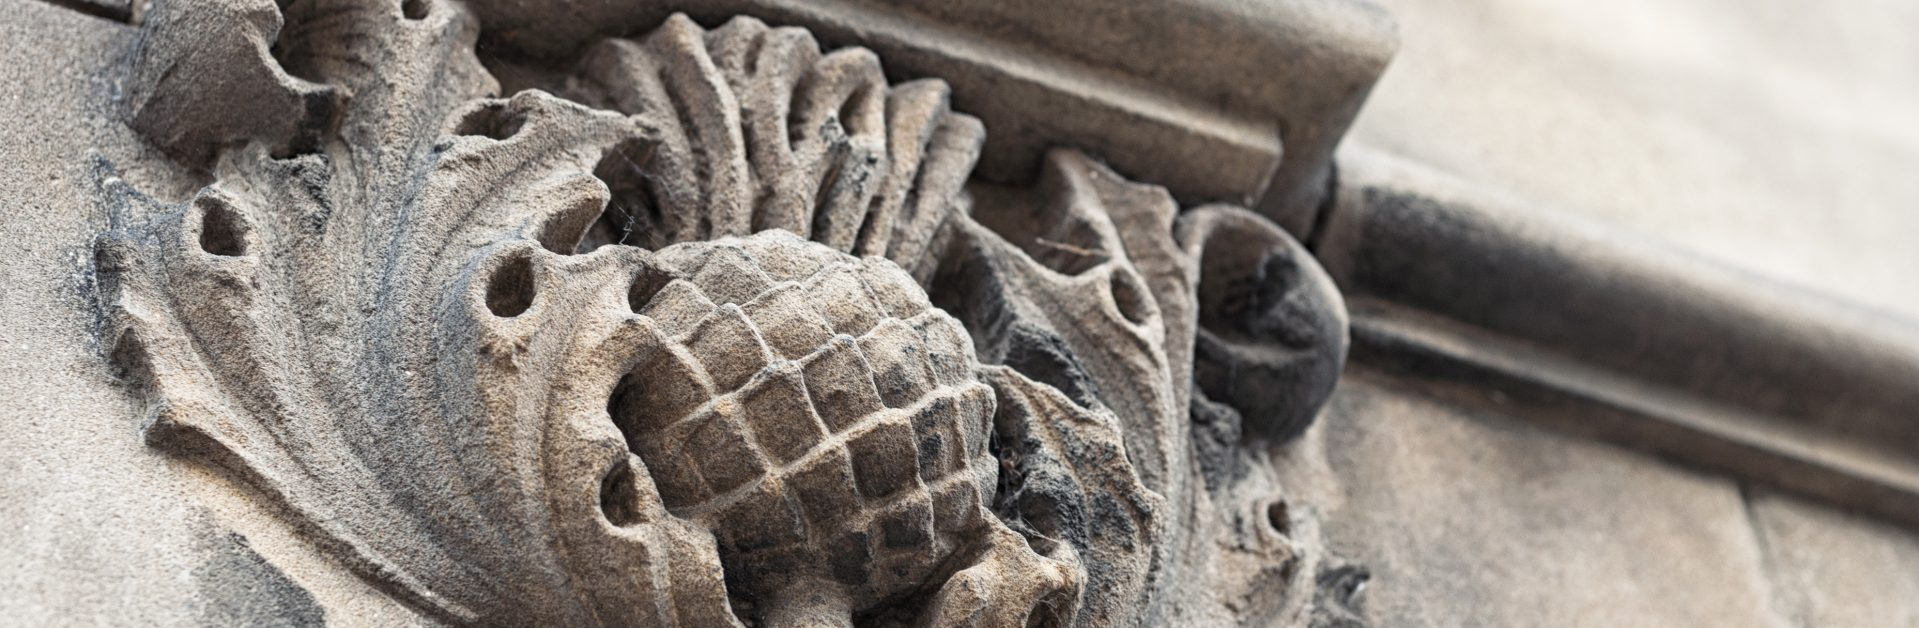 Close up image of carved stonework